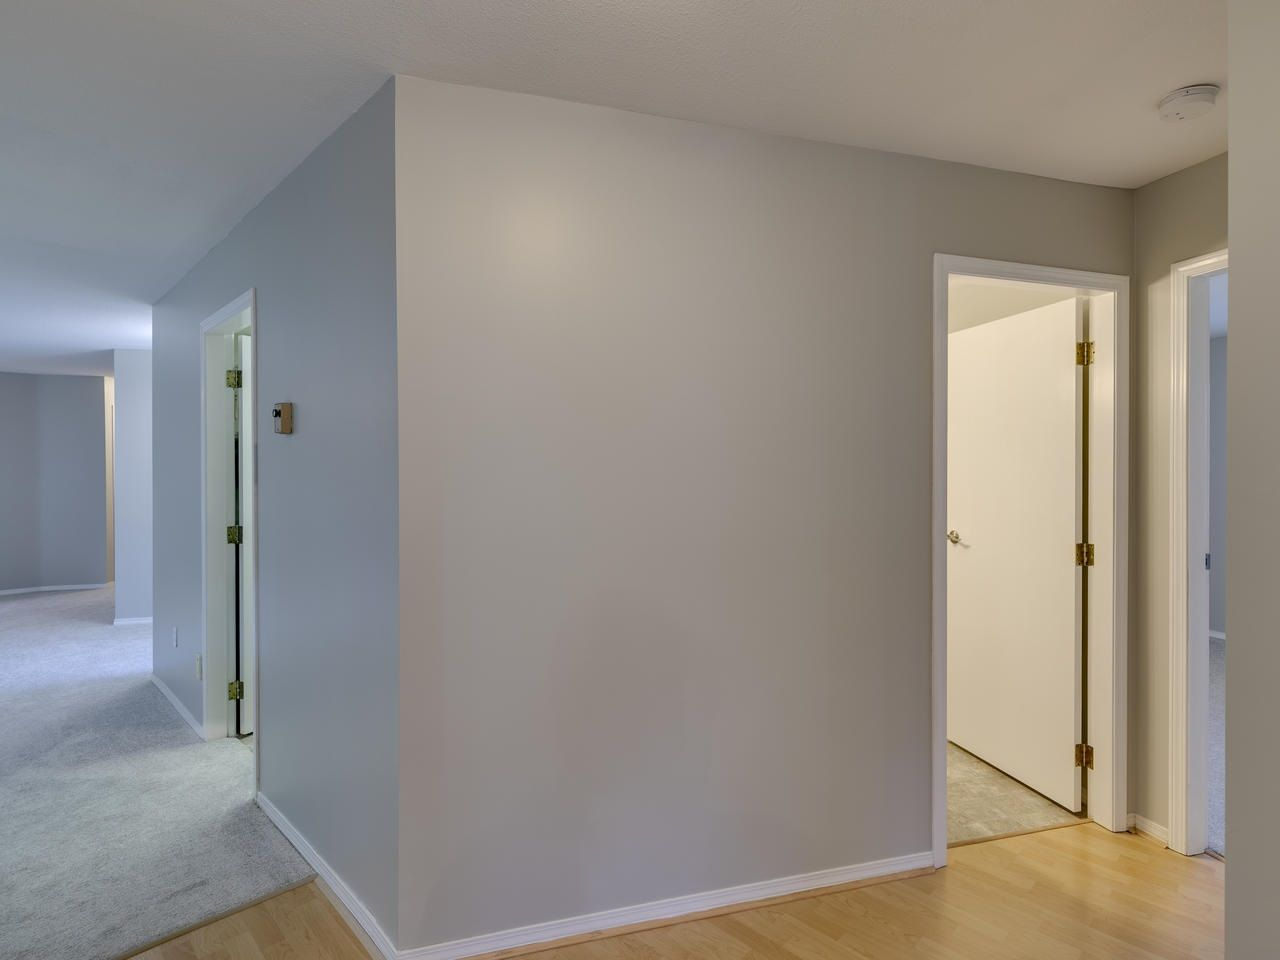 """Photo 29: Photos: 127 22555 116 Avenue in Maple Ridge: East Central Townhouse for sale in """"HILLSIDE"""" : MLS®# R2493046"""